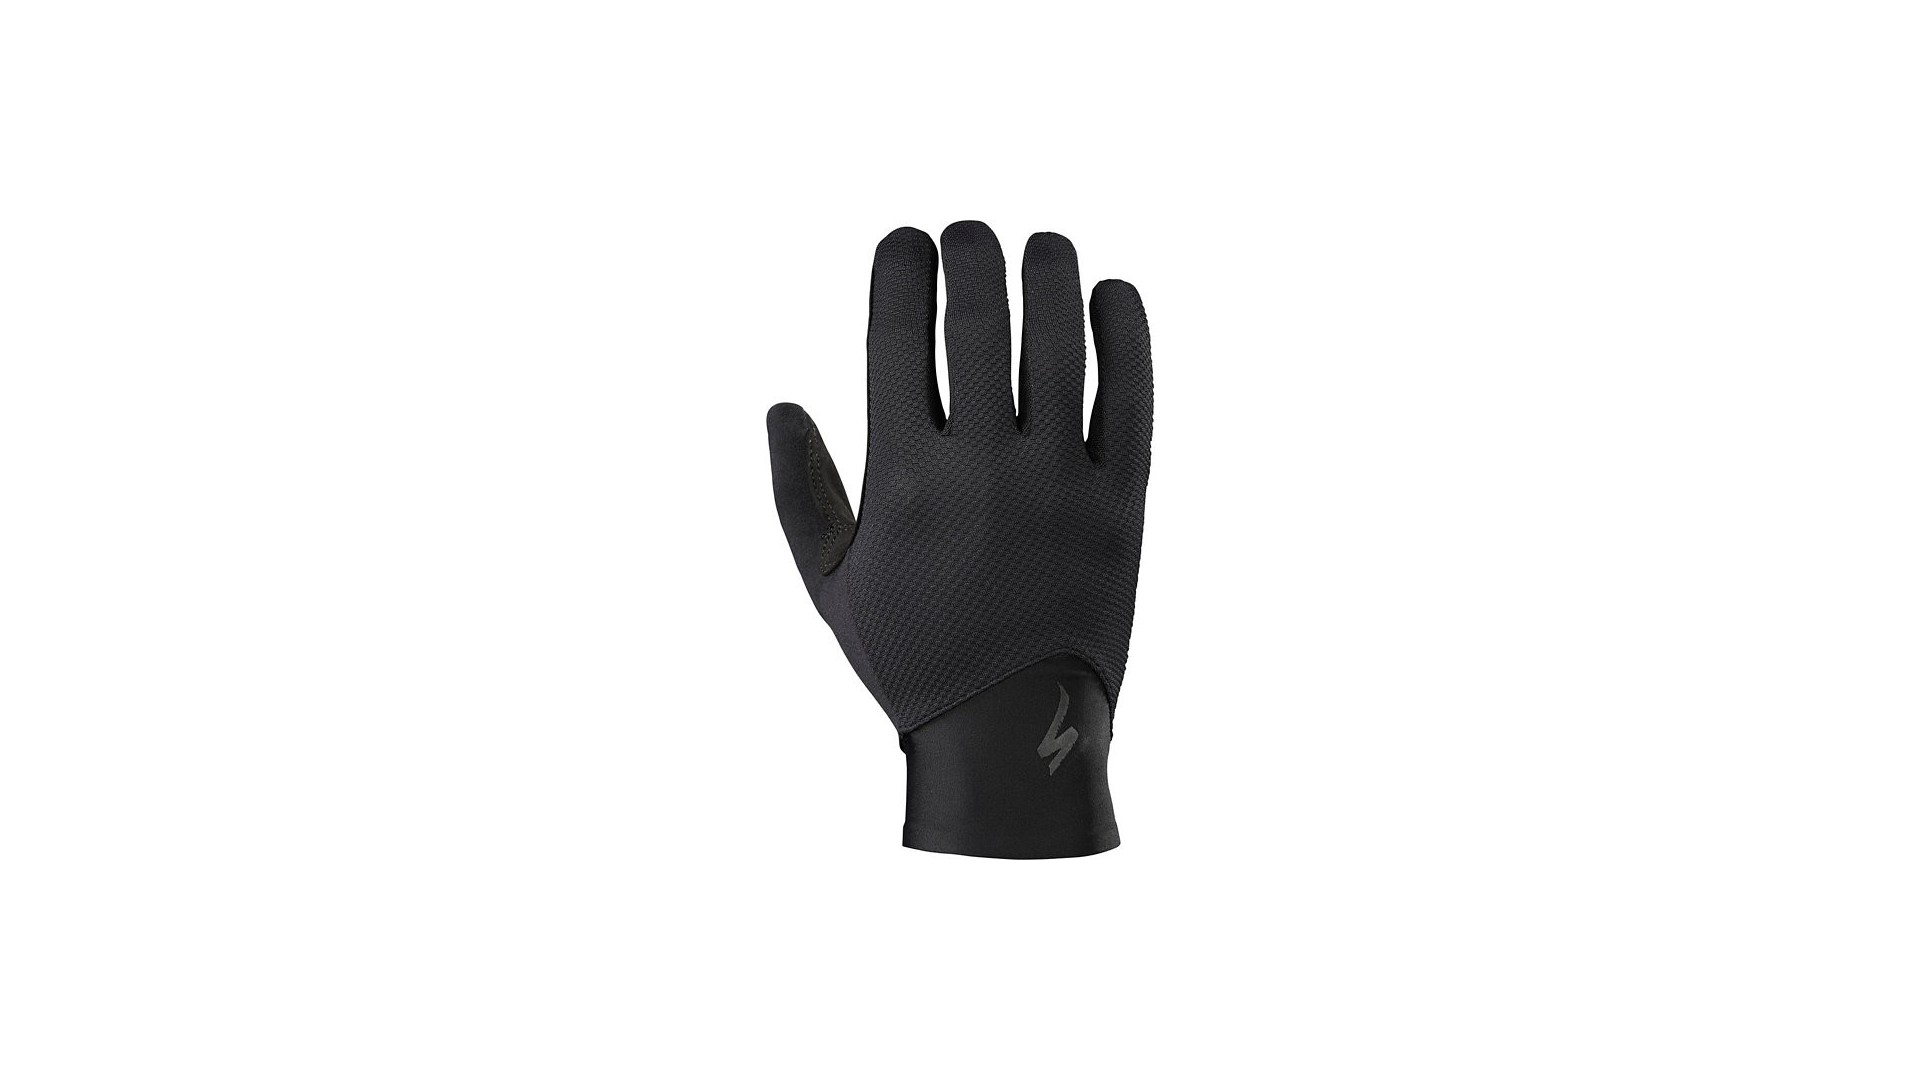 Renegade Guantes LF Specialized Body Geometry Negro 1 IBKBike.es